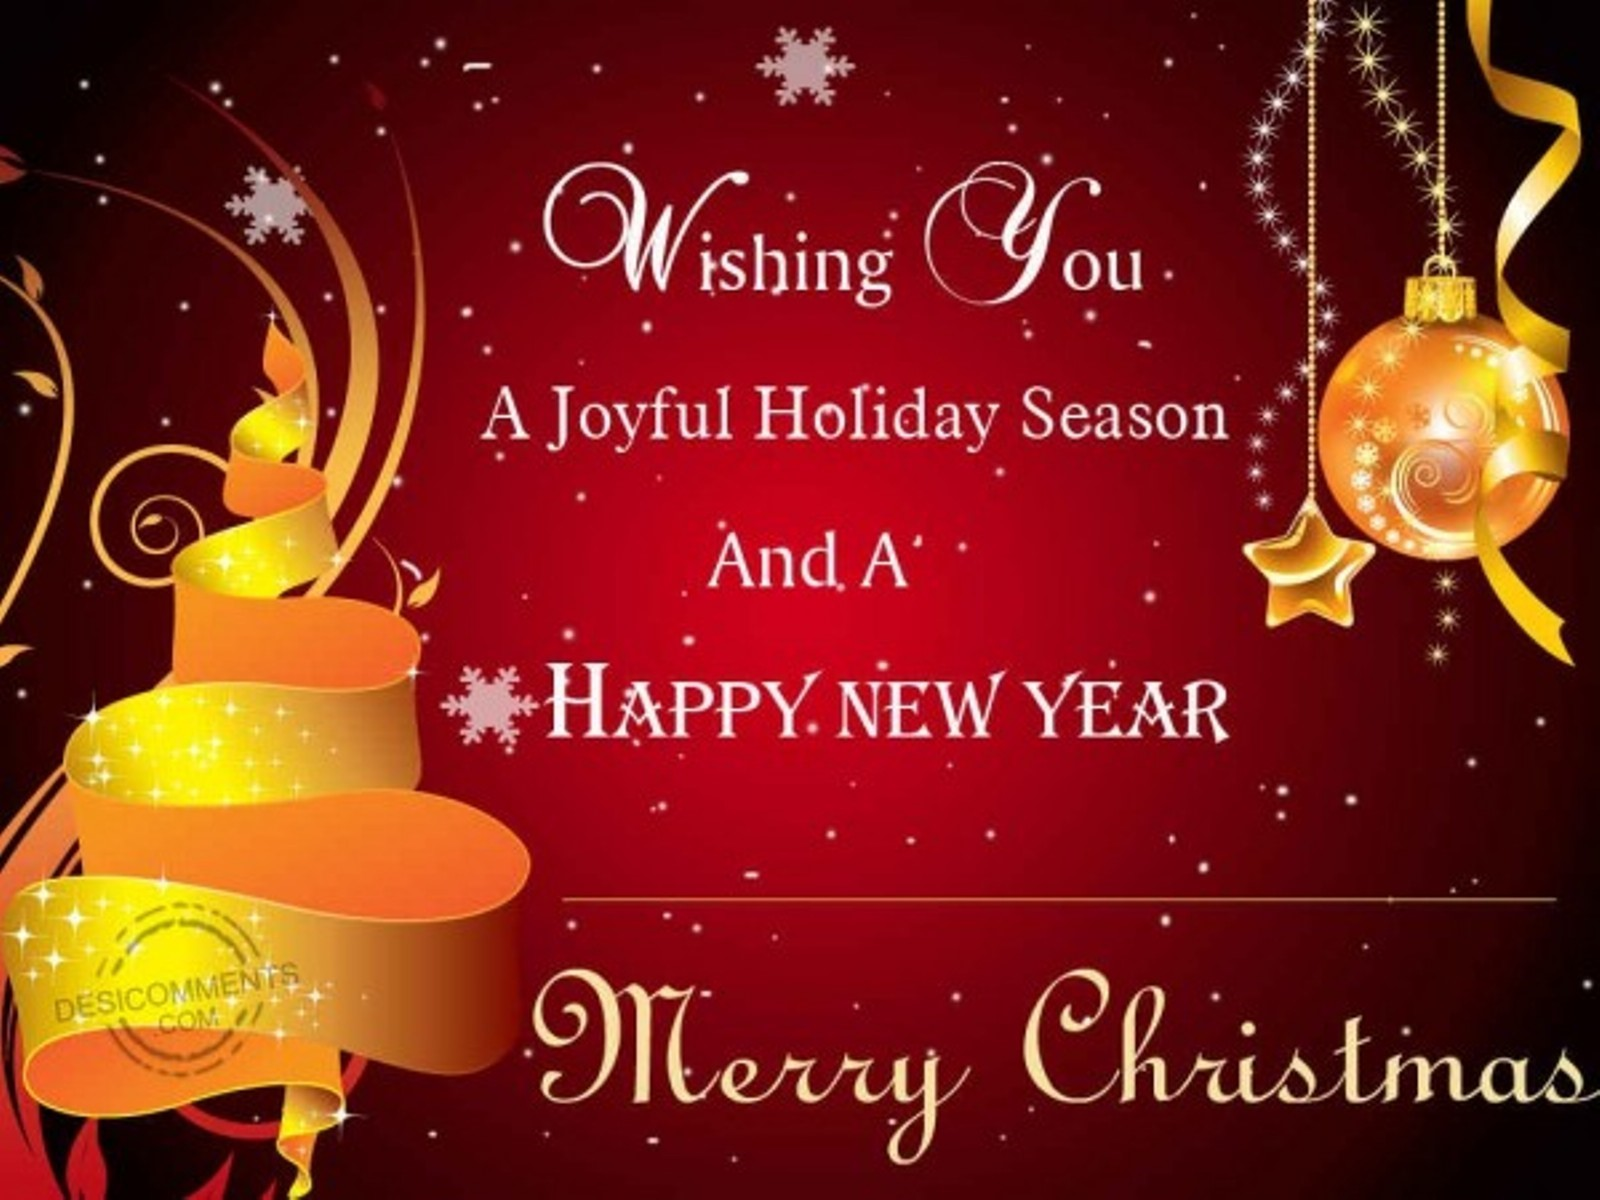 Christmas day pic images download quotes jokes funny shayari wallpaperschristmas wishesfree christmas cardsrecentchristmas messages for parentsmerry christmas and happy new year messageschristmas kristyandbryce Gallery